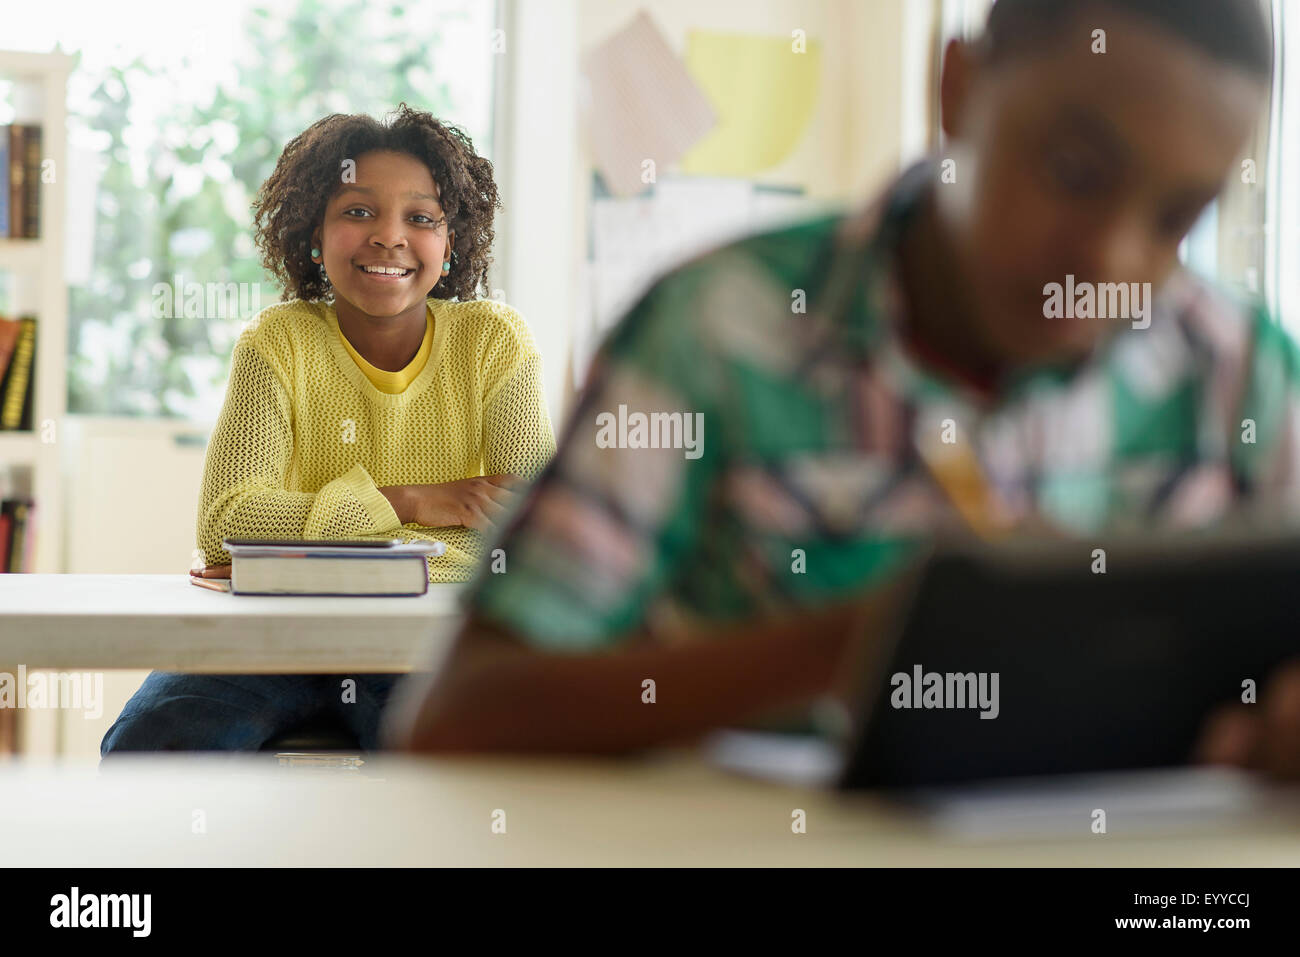 Black student smiling in classroom Stock Photo